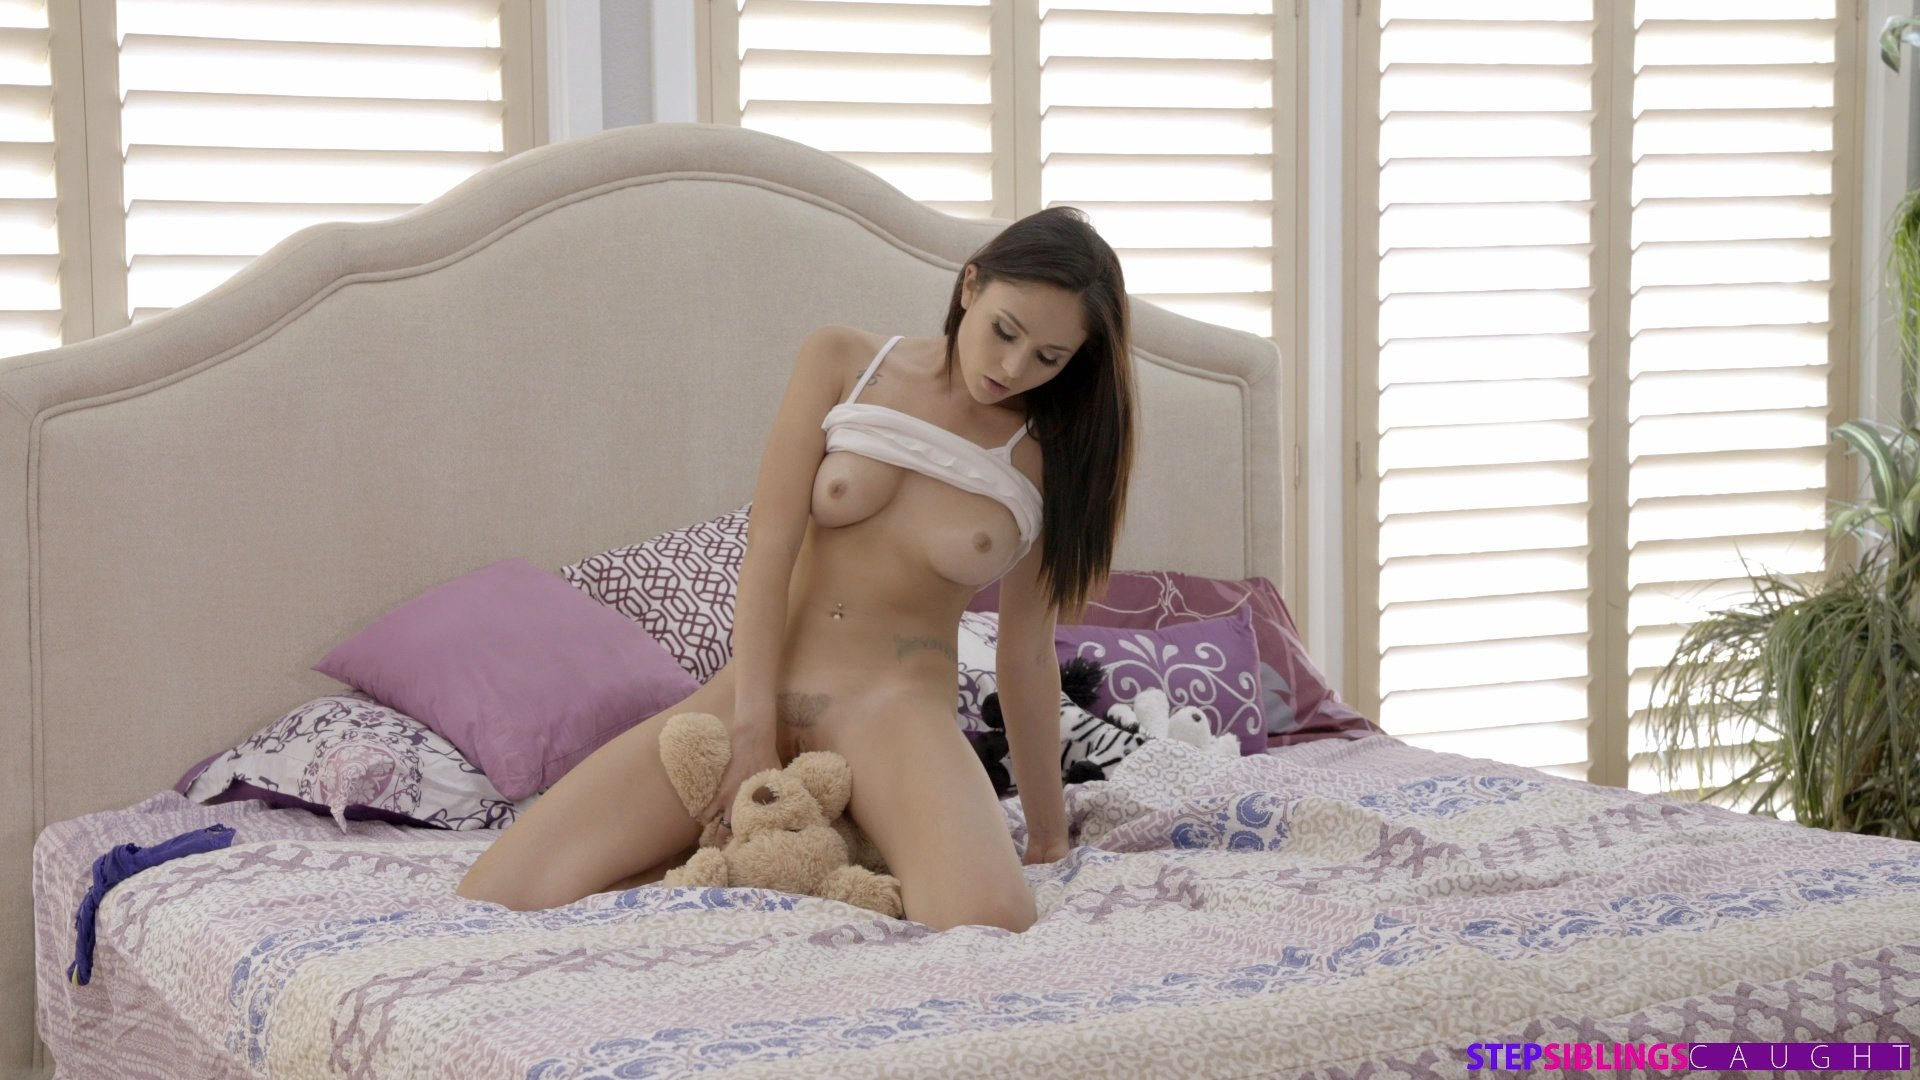 Eating pussy thumbnails Hot Lonely Girl Play With Crazy Things To Get Orgasm clip-26